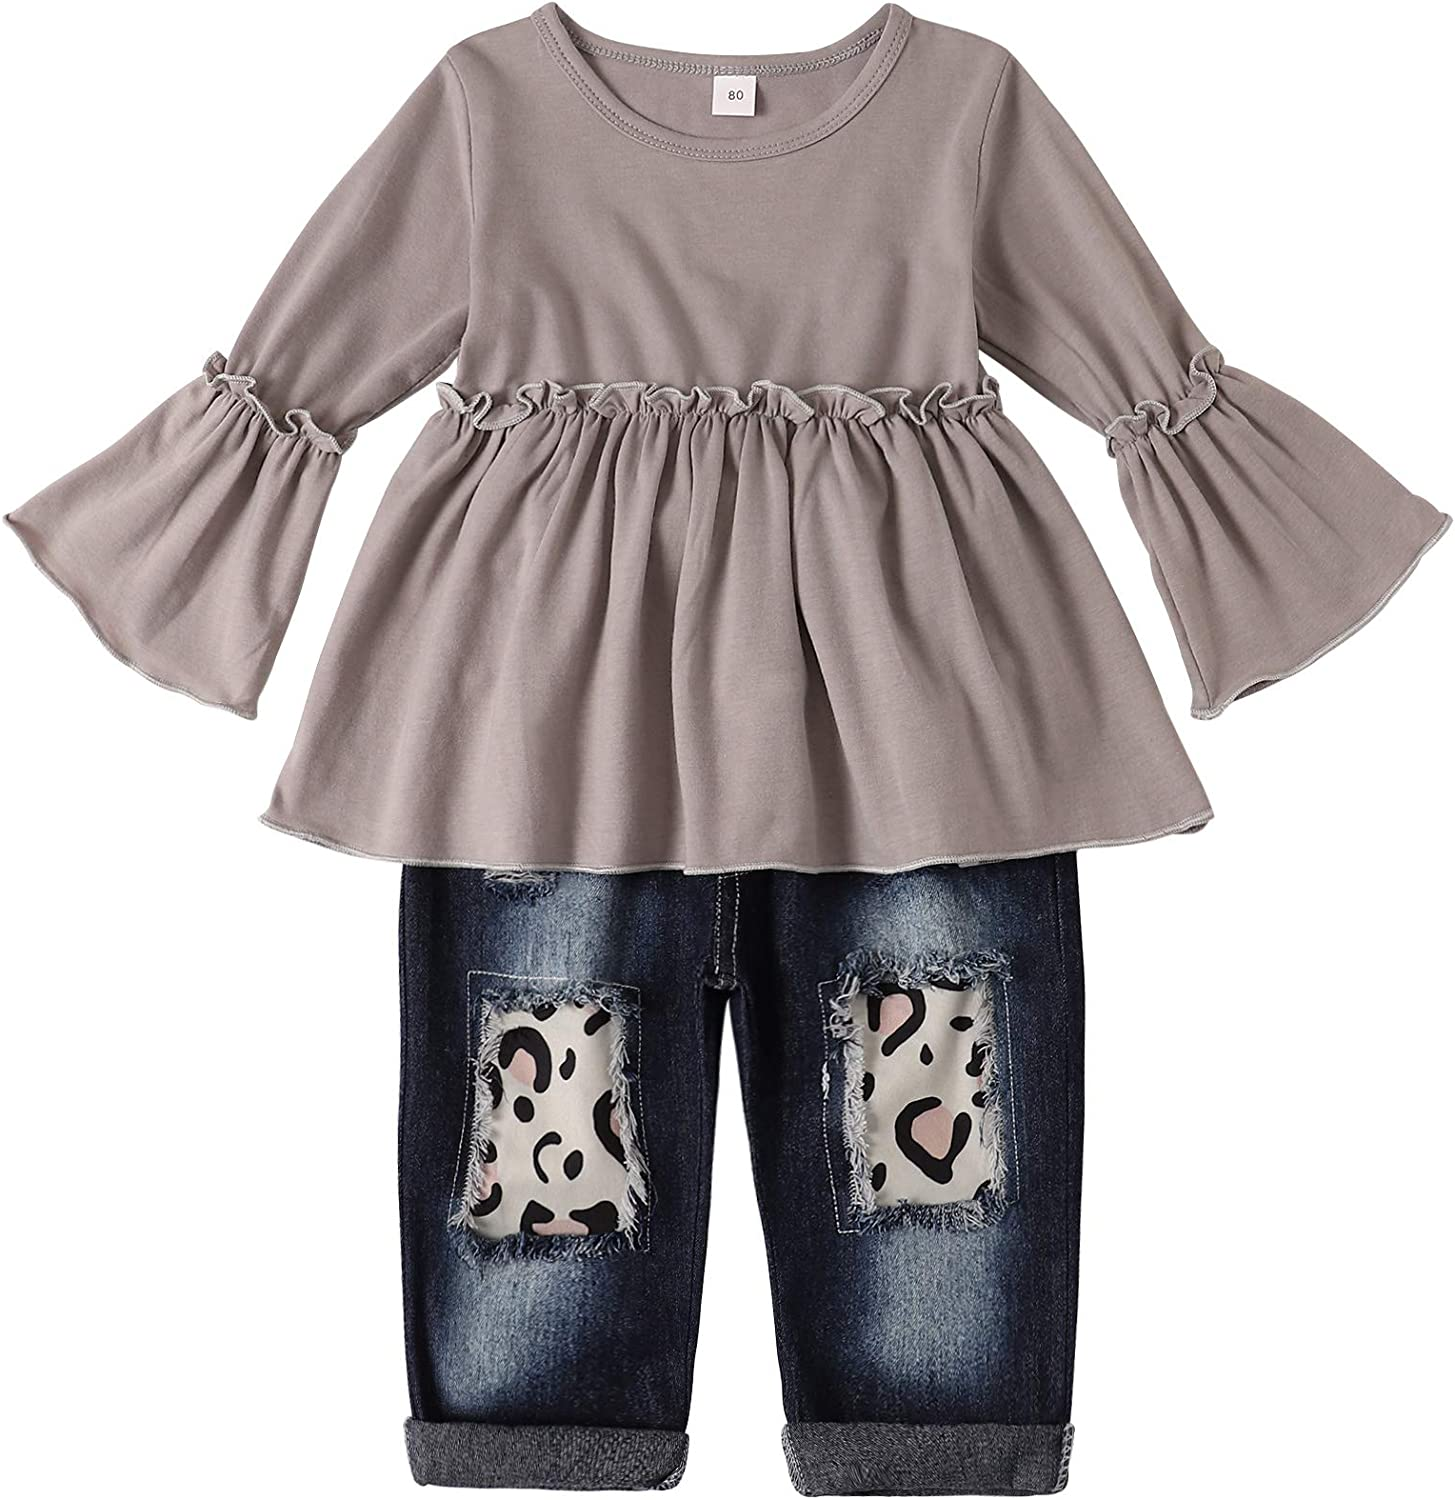 2pcs baby toddler girls clothes cotton cute outfits tops+pants girls outfits bow